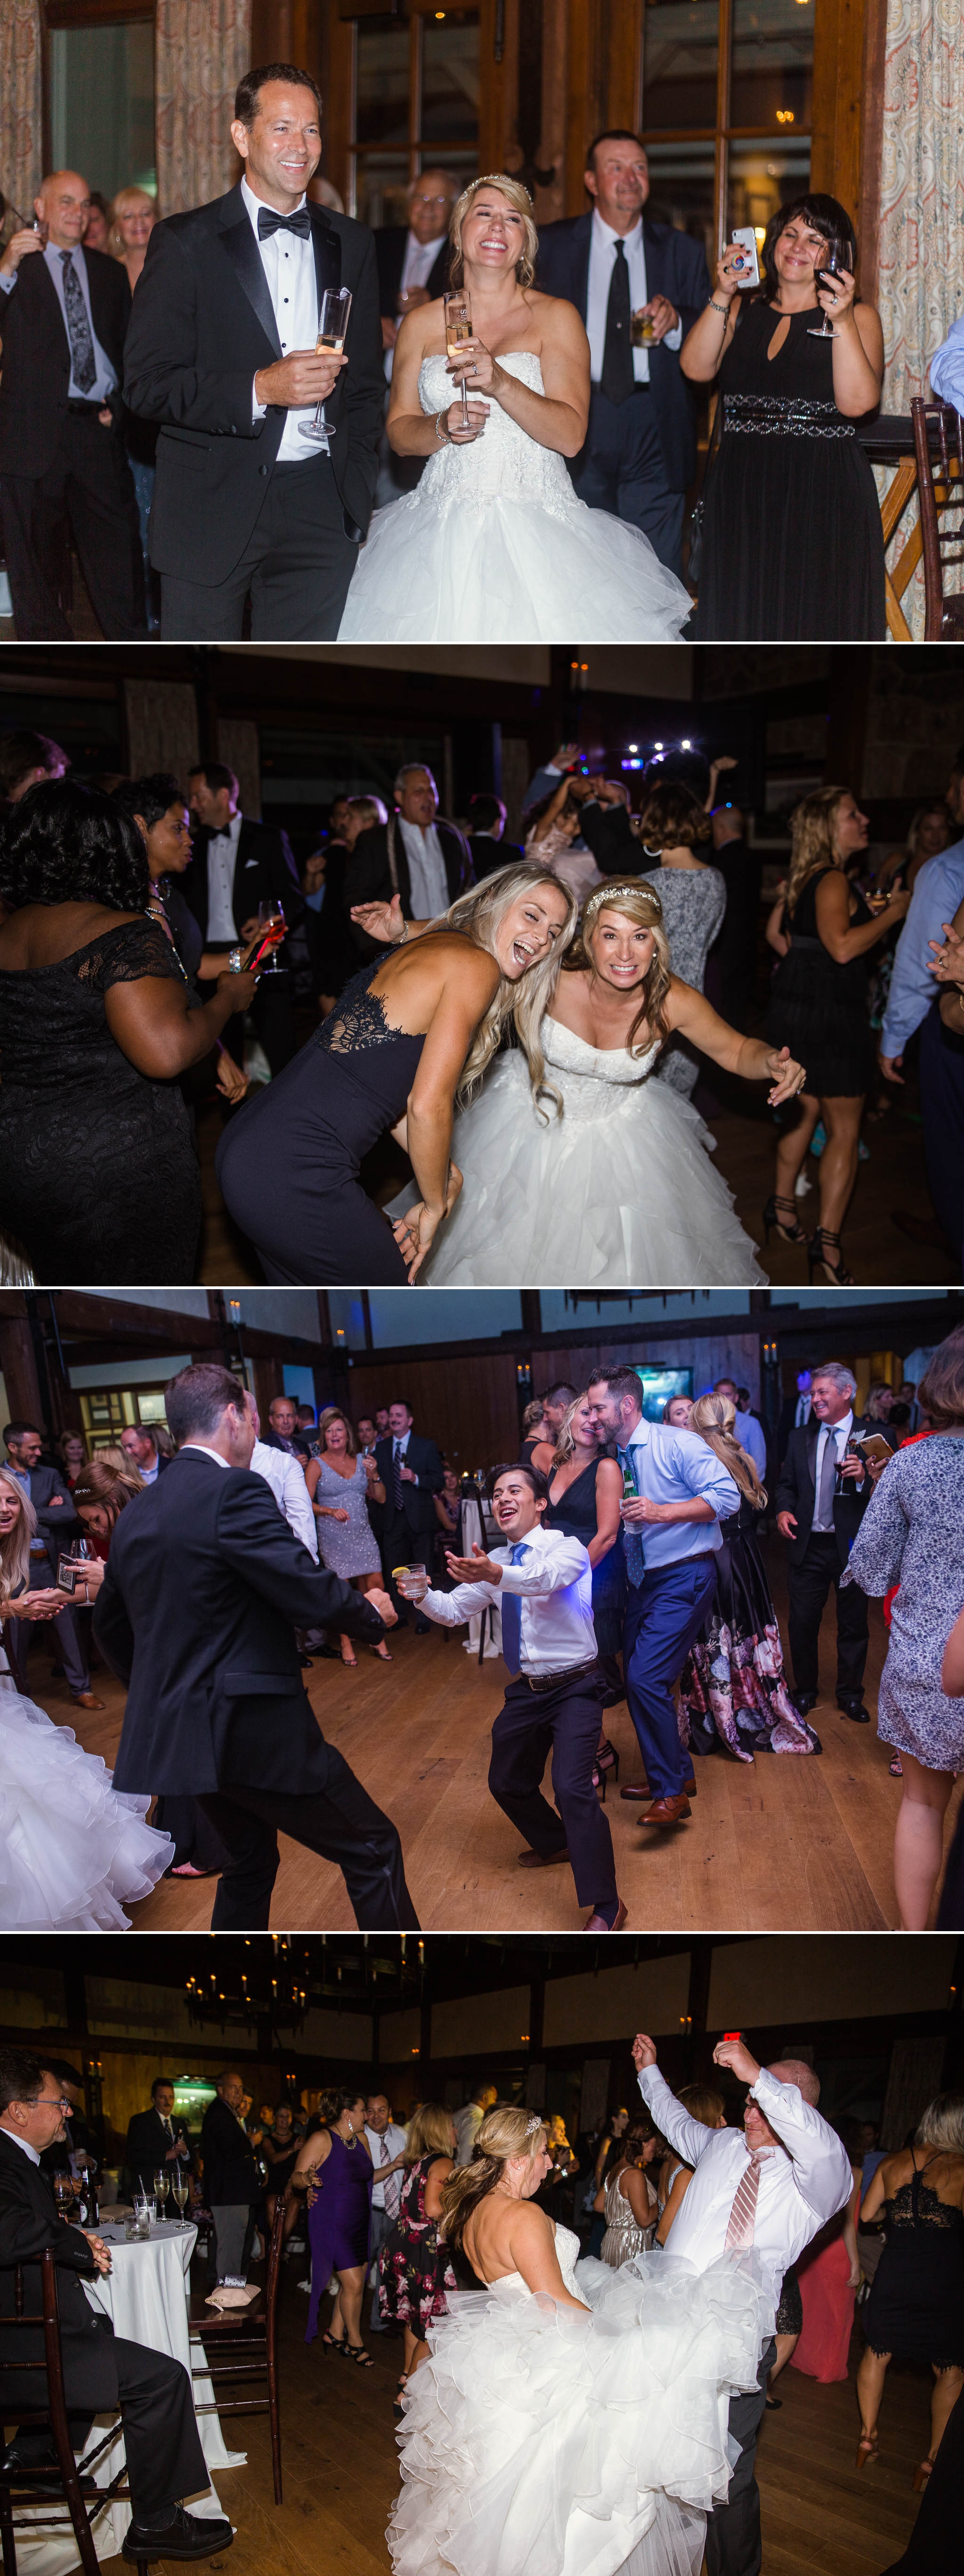 Reception - Dona + Doug - MacGregor Downs Country Club in Cary, NC - Raleigh Wedding Photographer